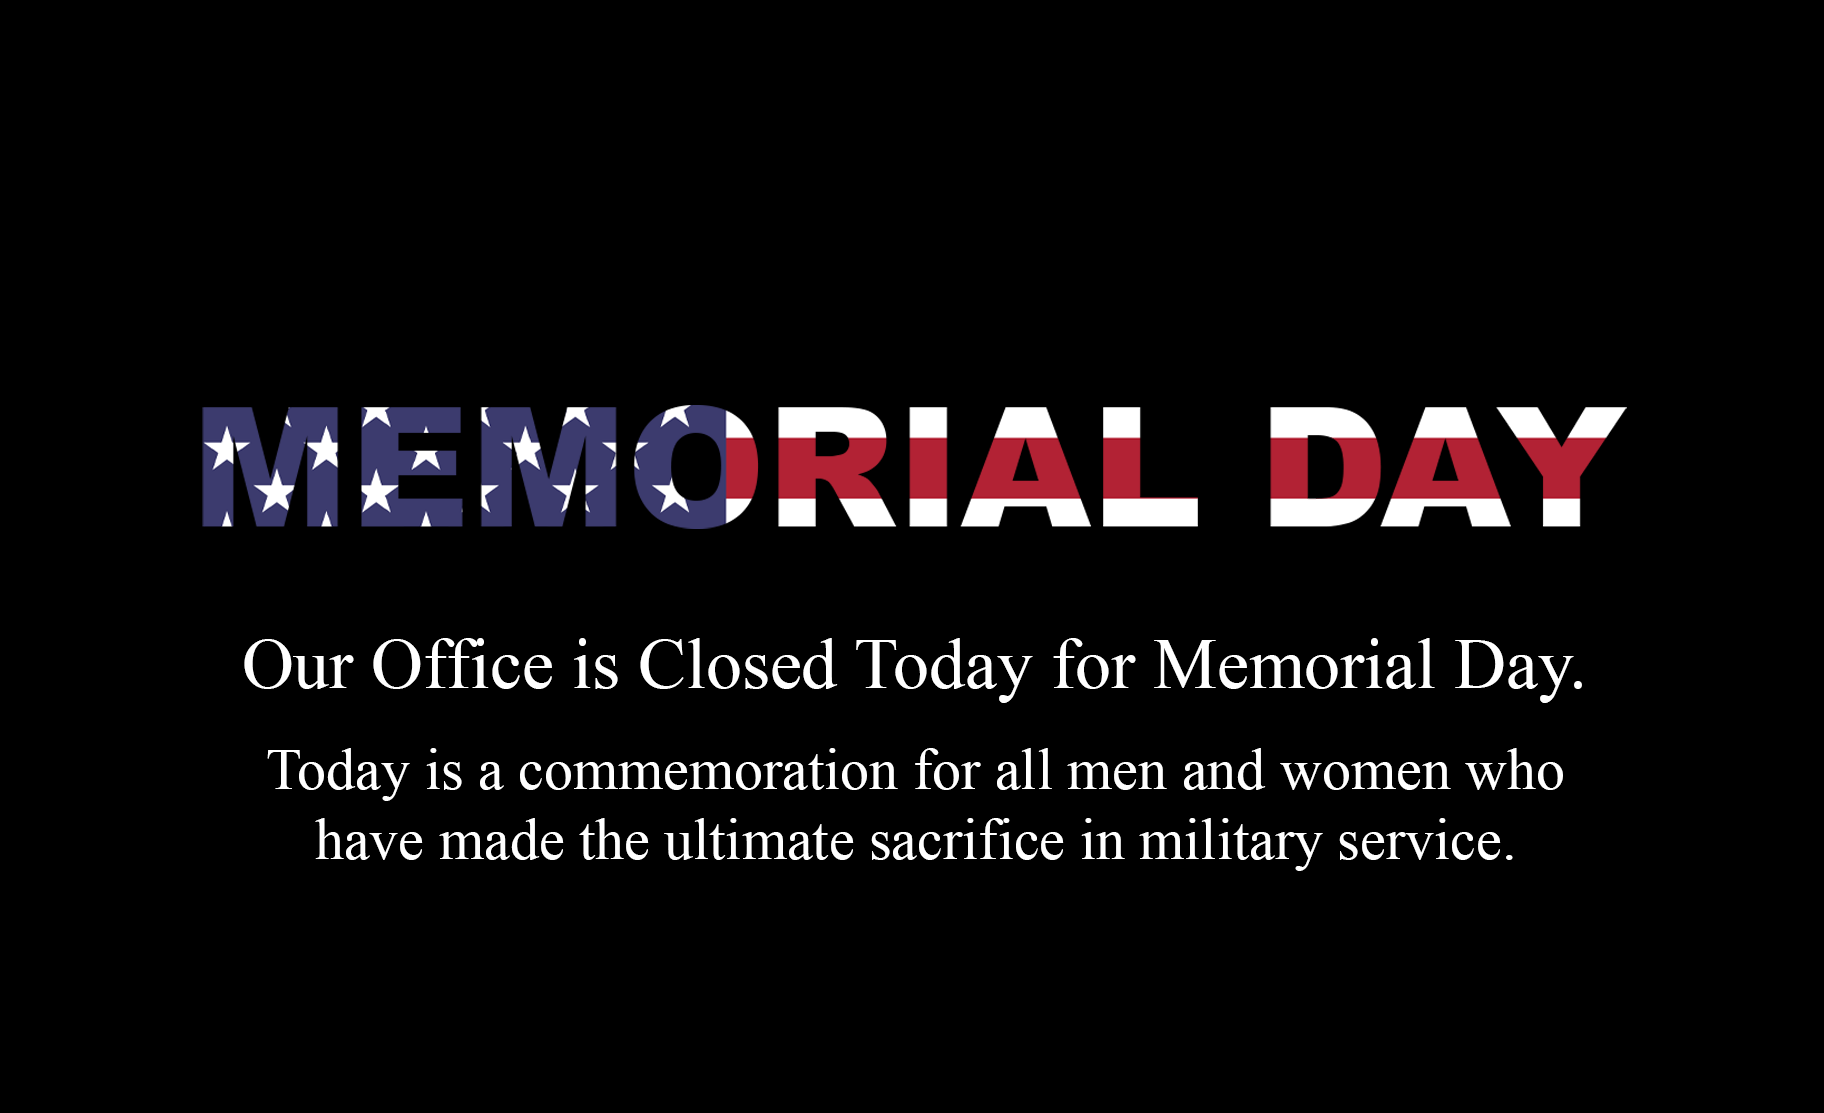 Happy Memorial Day Our Office Will Be Closed Today So We May